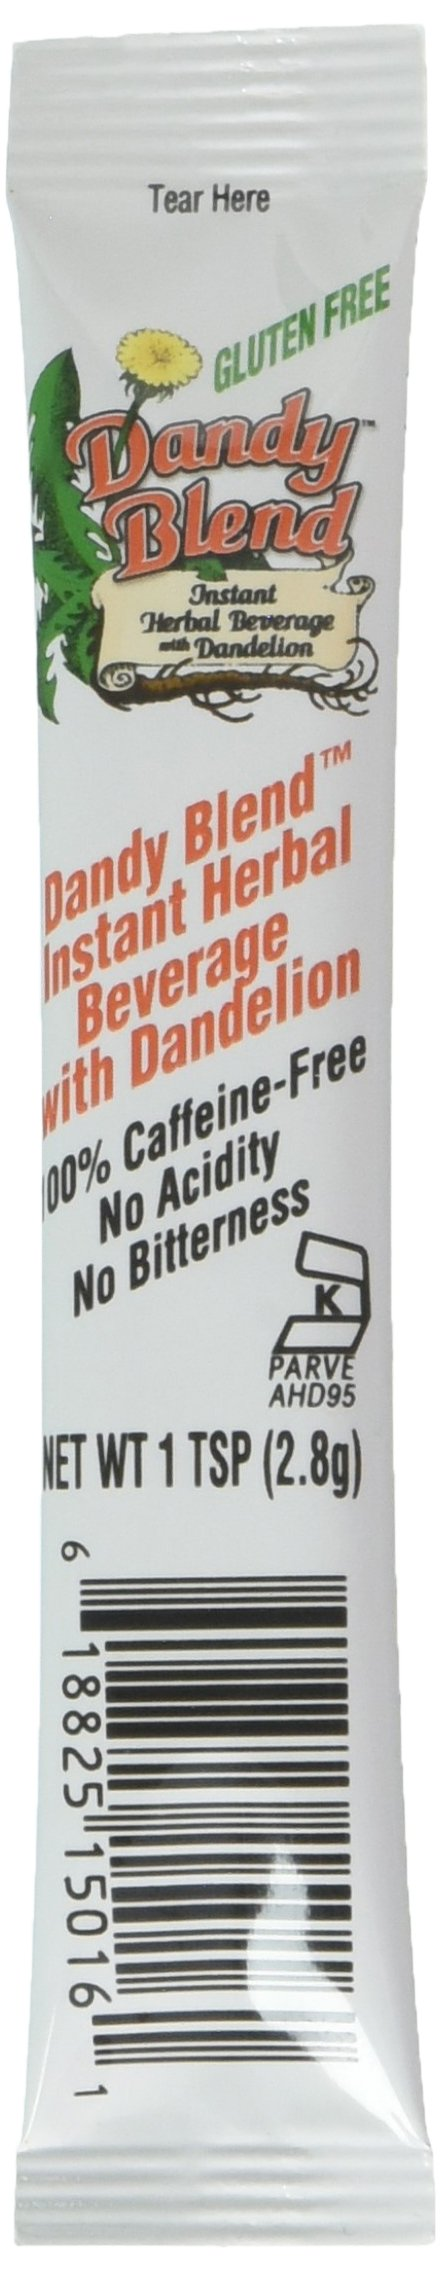 Dandy Blend Instant Herbal Beverage With Dandelion Caffeine Free 25 Single Serving Pouches